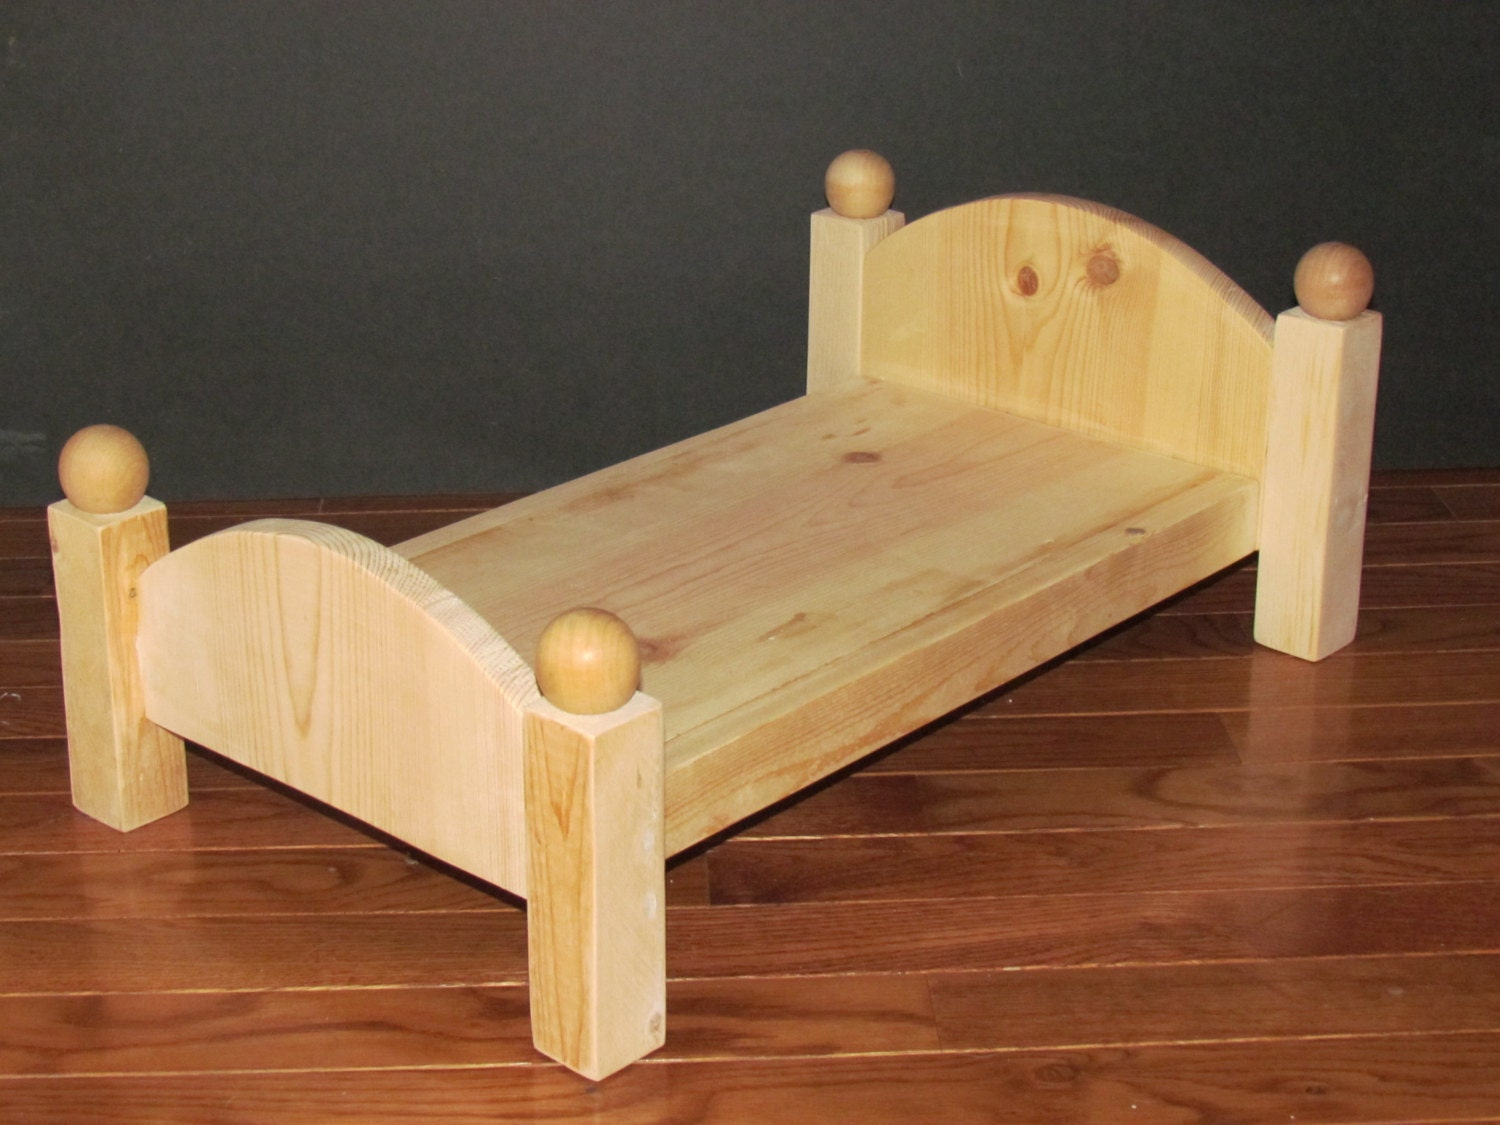 Handmade Wooden Doll Bed 20 Inches Long